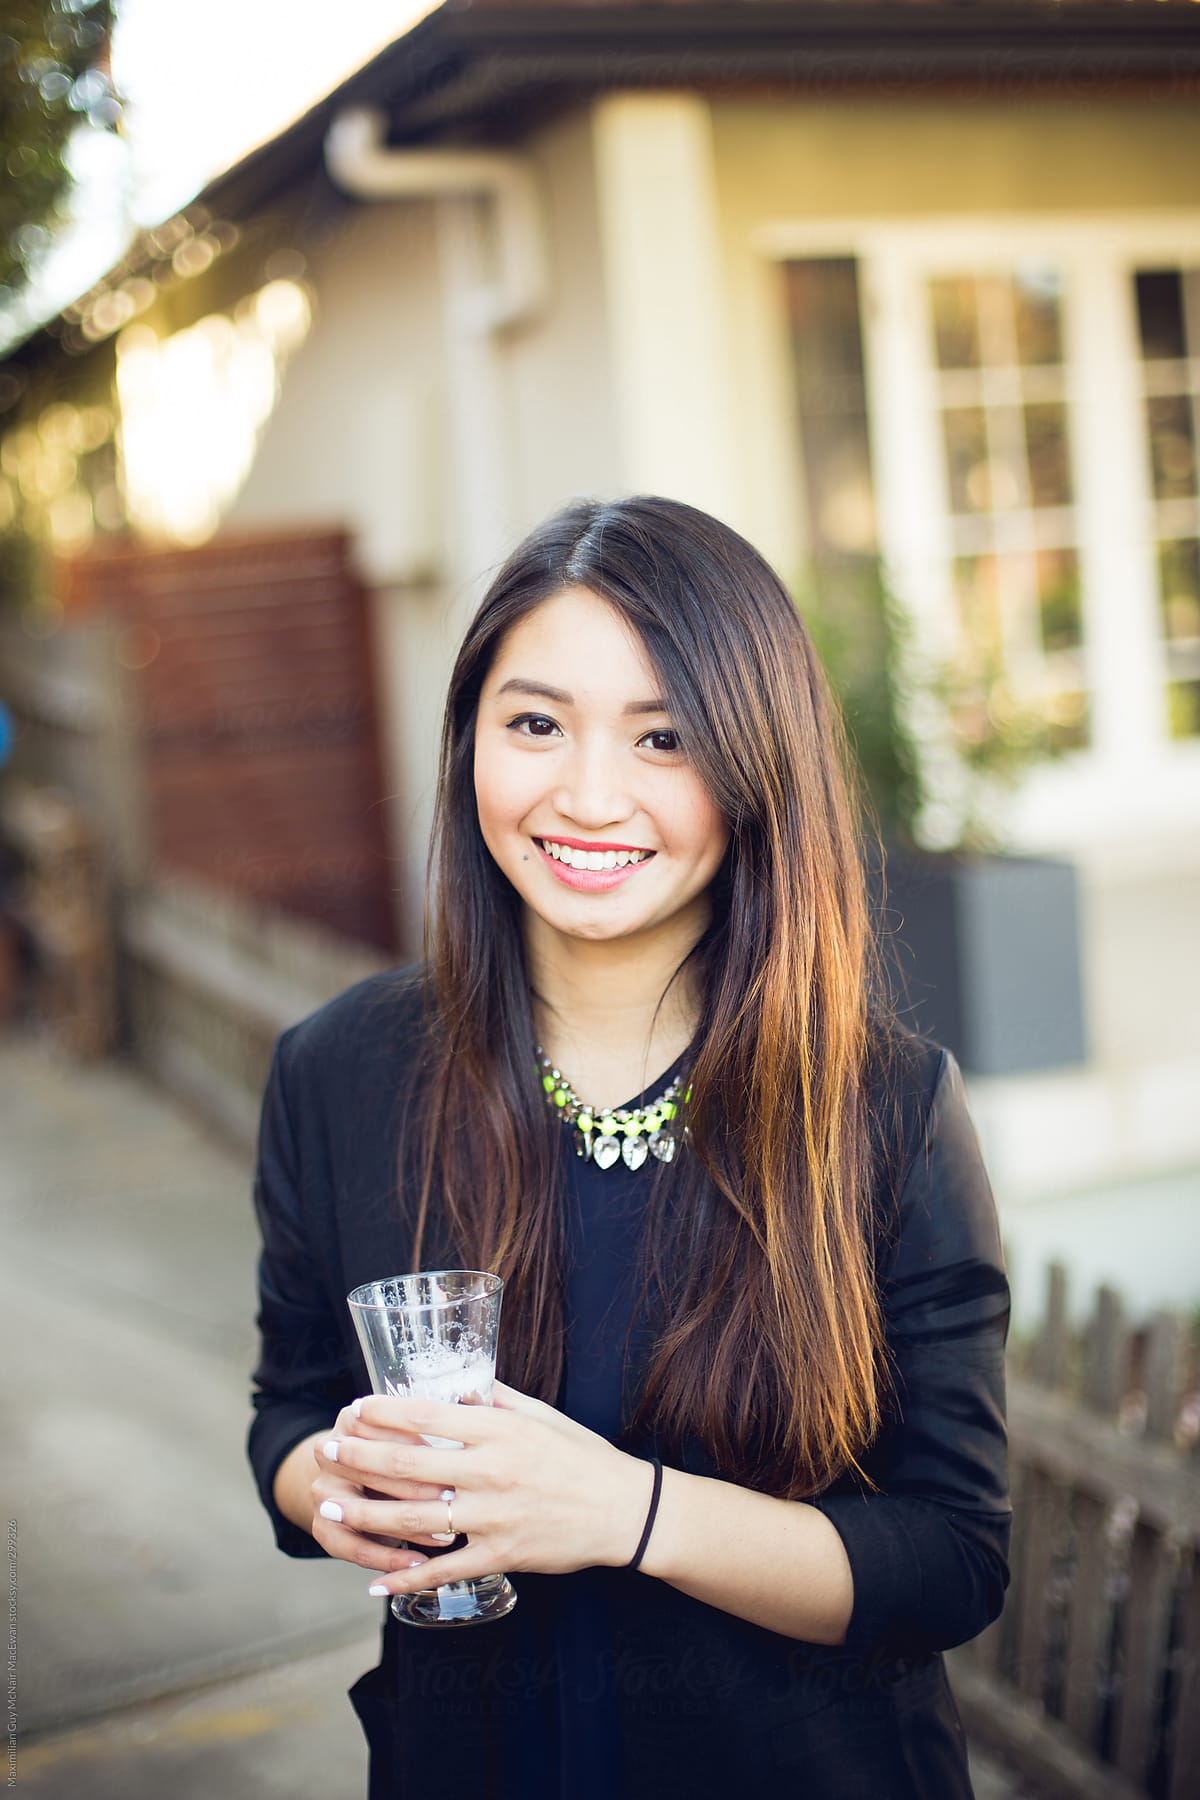 A Pretty Vietnamese Girl With A Drink  Stocksy United-5124